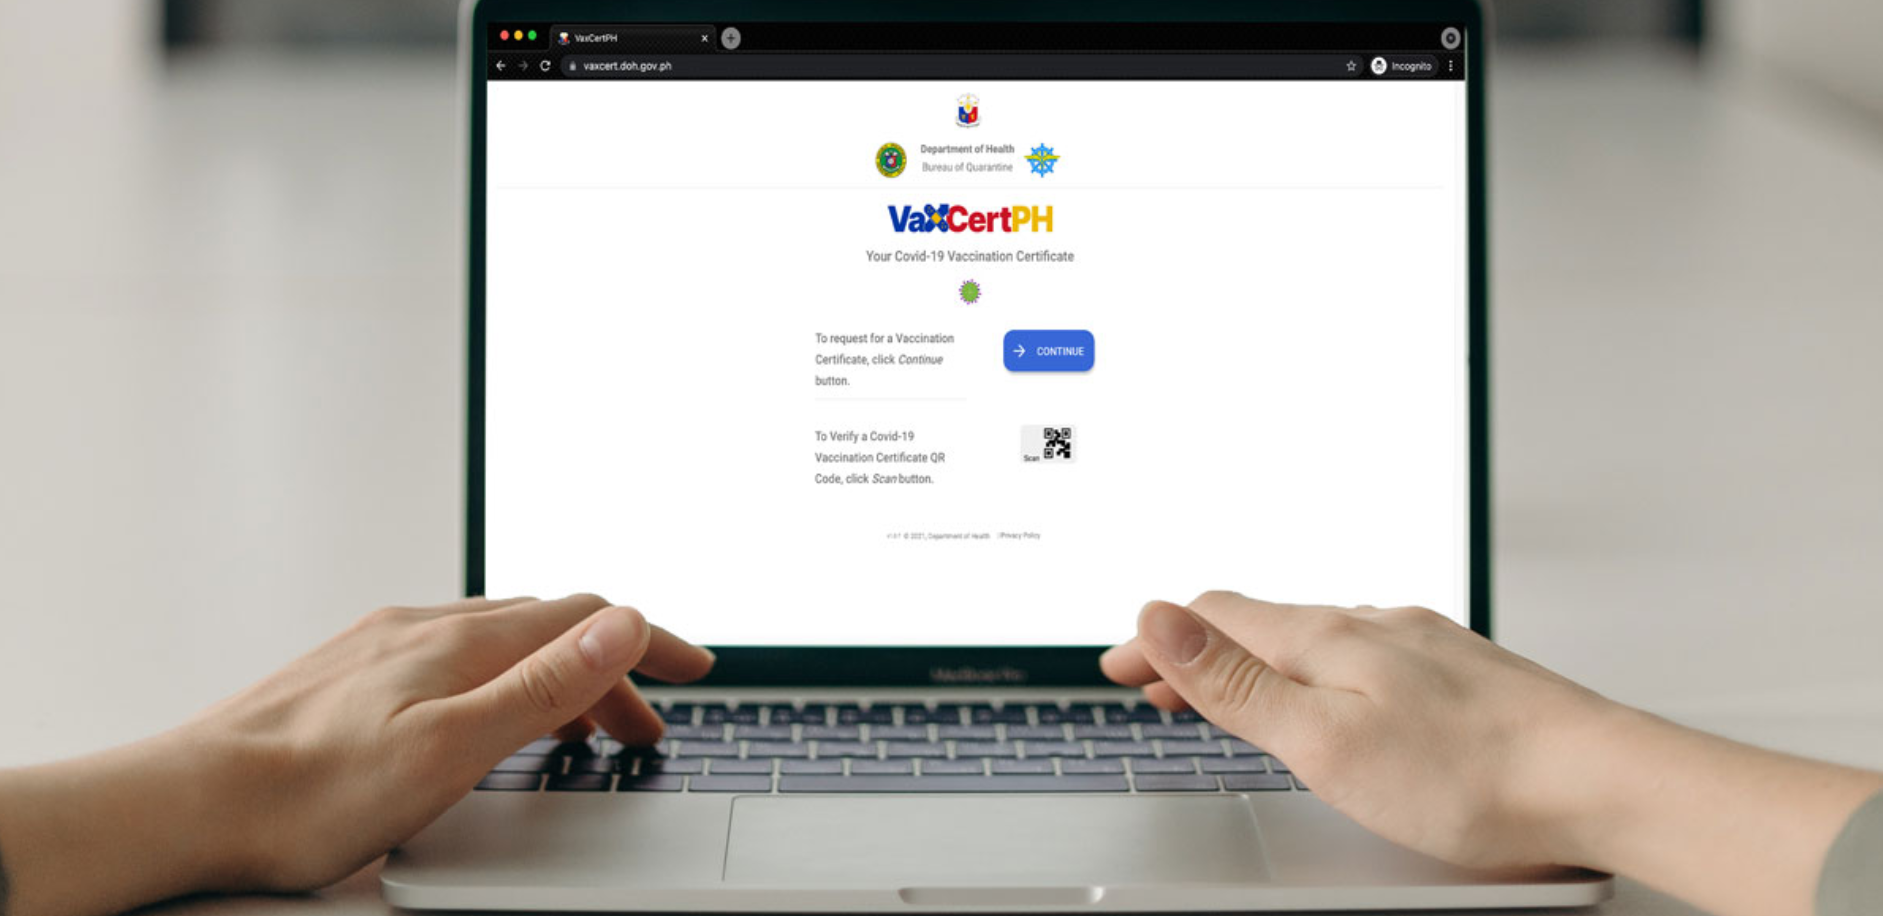 VaxCertPH App   How to Get the Philippine Digital COVID19 Vaccine Certificate   All Filipinos, OFWs and Seafarers Guide